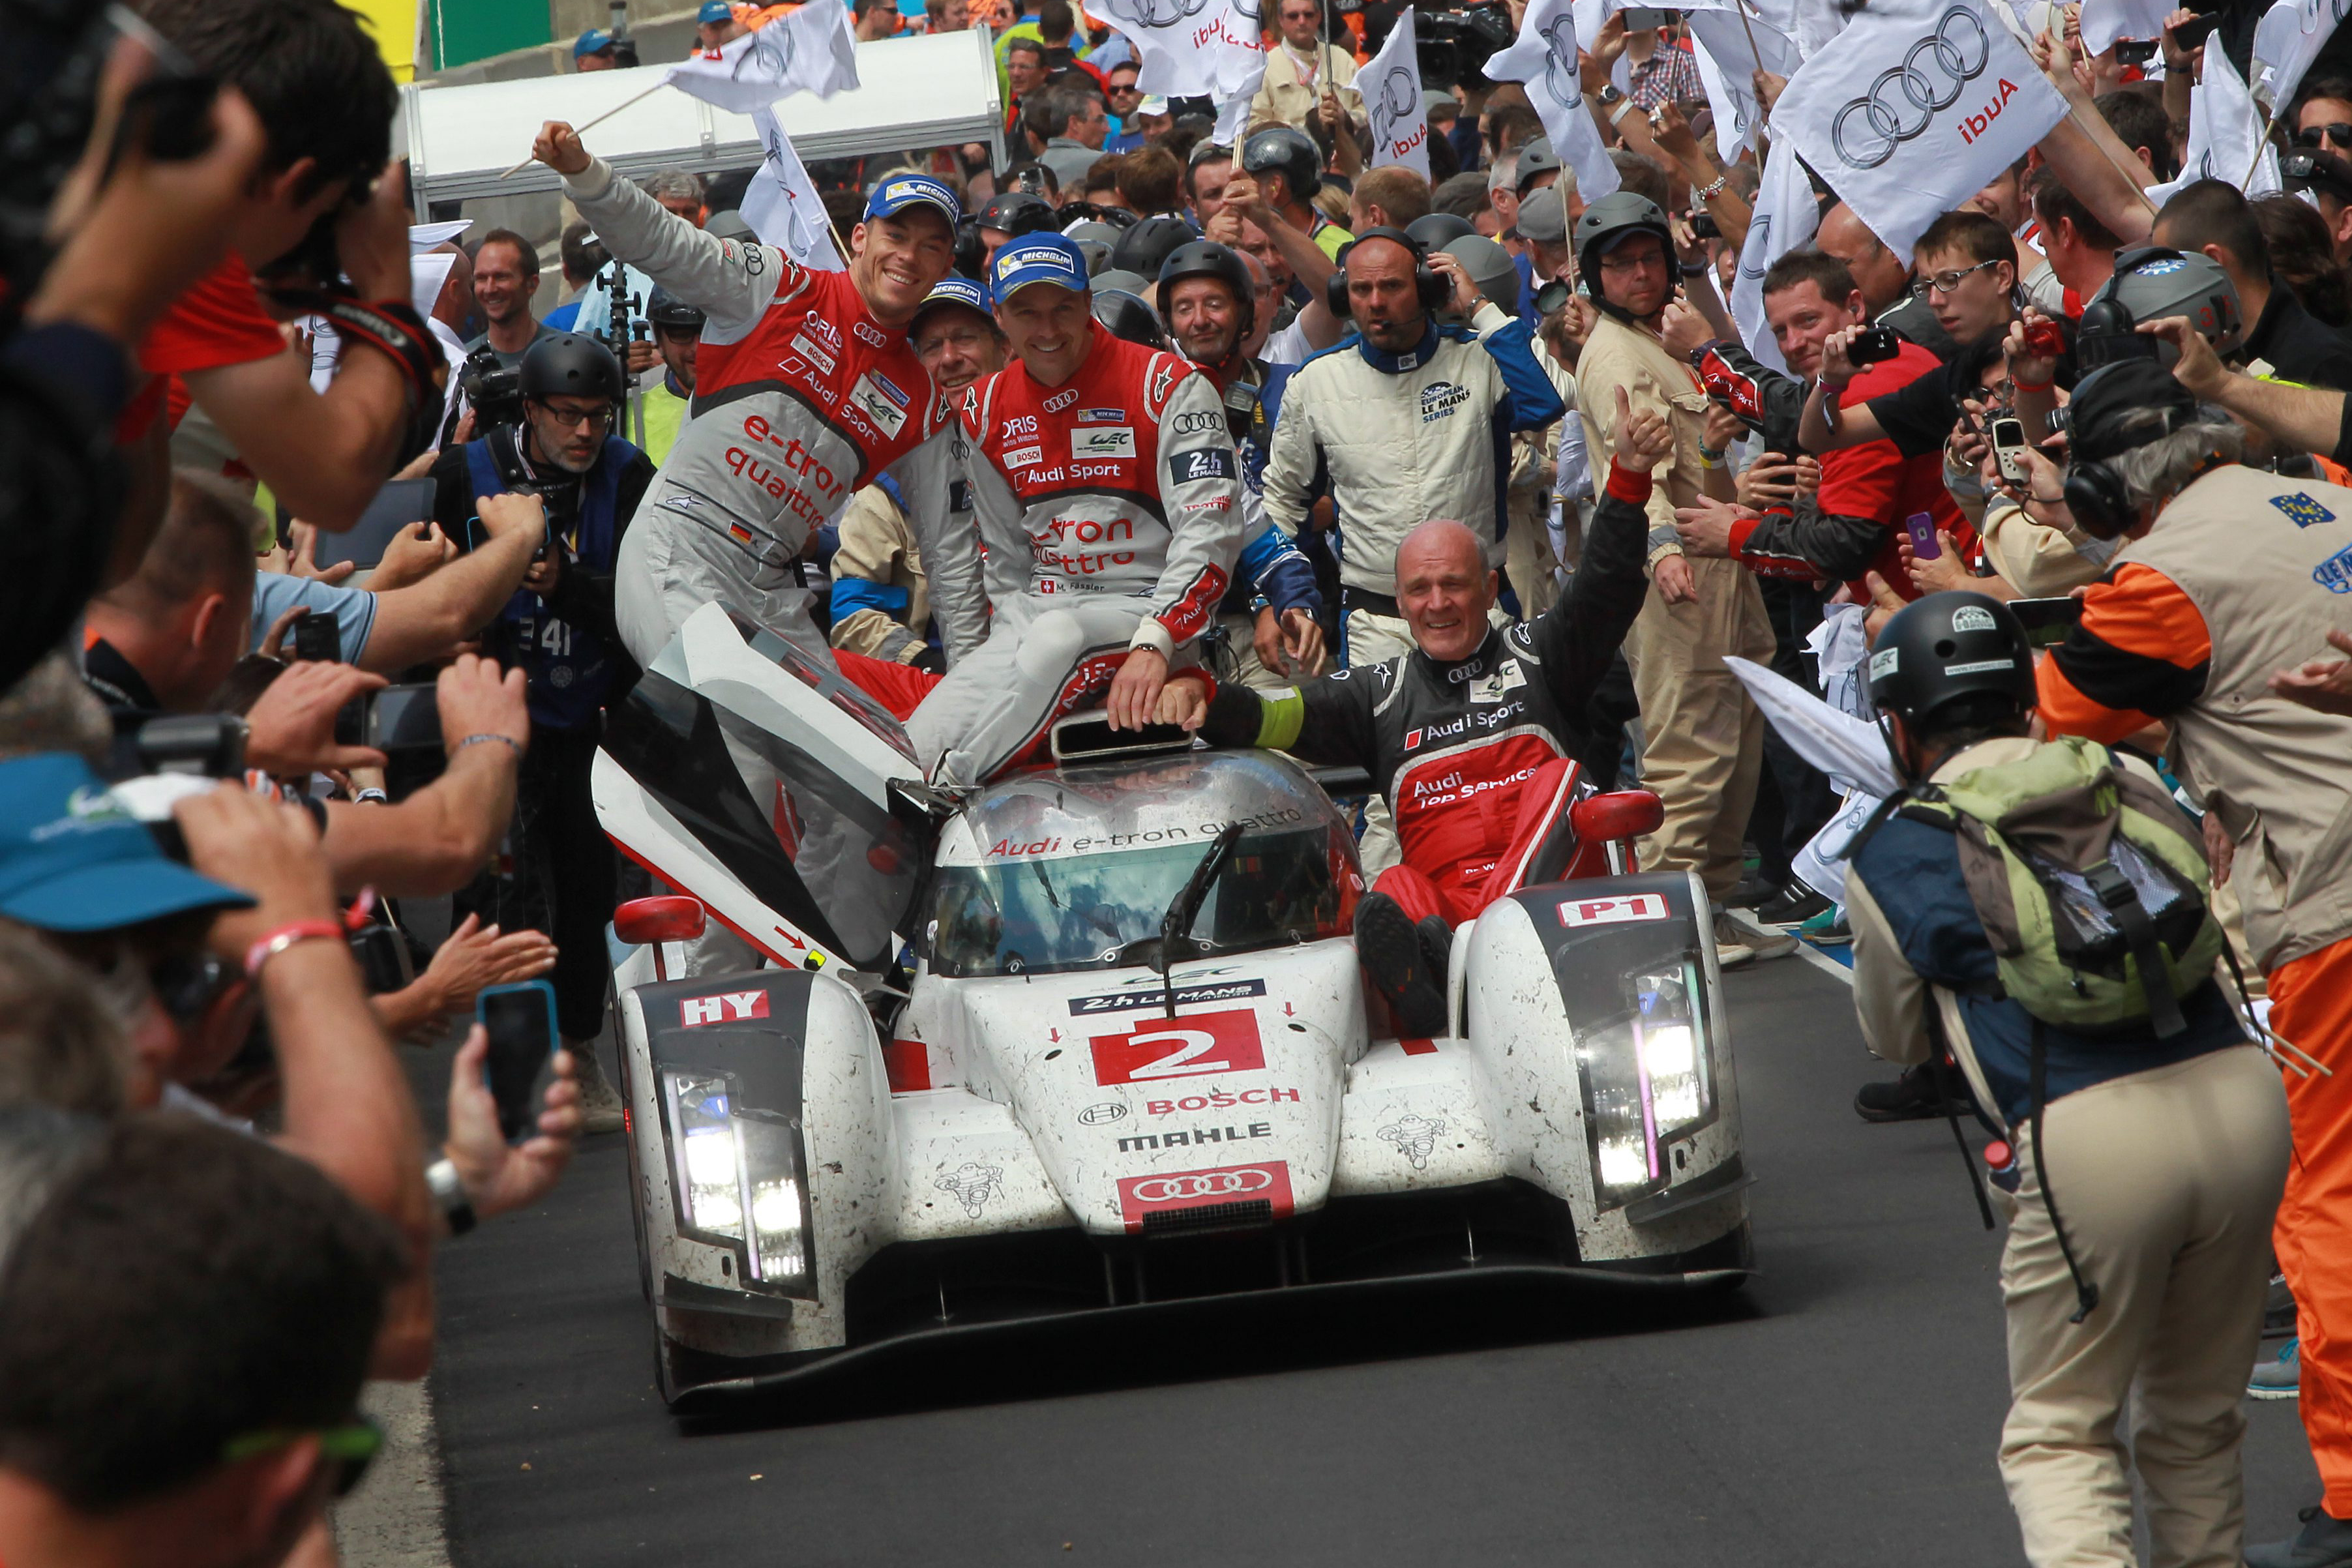 Le Mans 2014 Audi 1 2 Marks 13th Win For Ingolstadt Paul